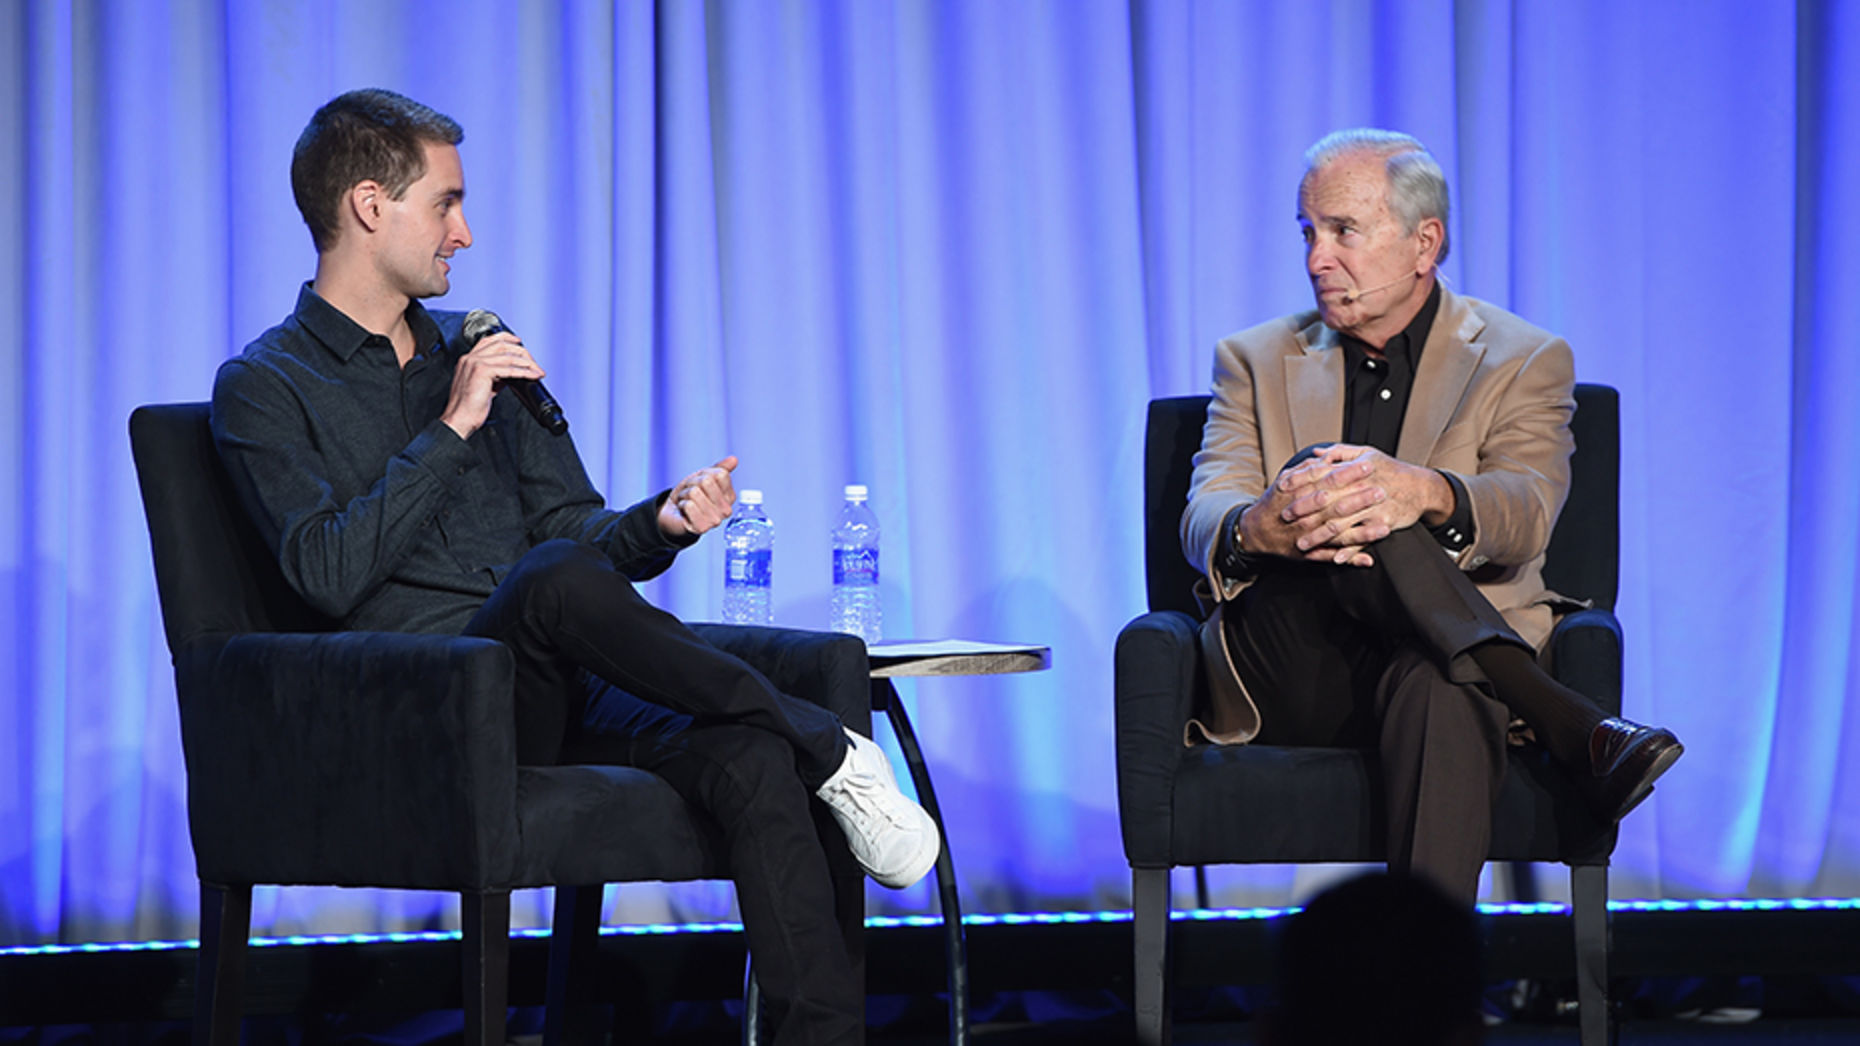 Snapchat CEO Evan Spiegel speaks to journalist Ken Auletta. Photo by Larry Busacca/Getty Image.